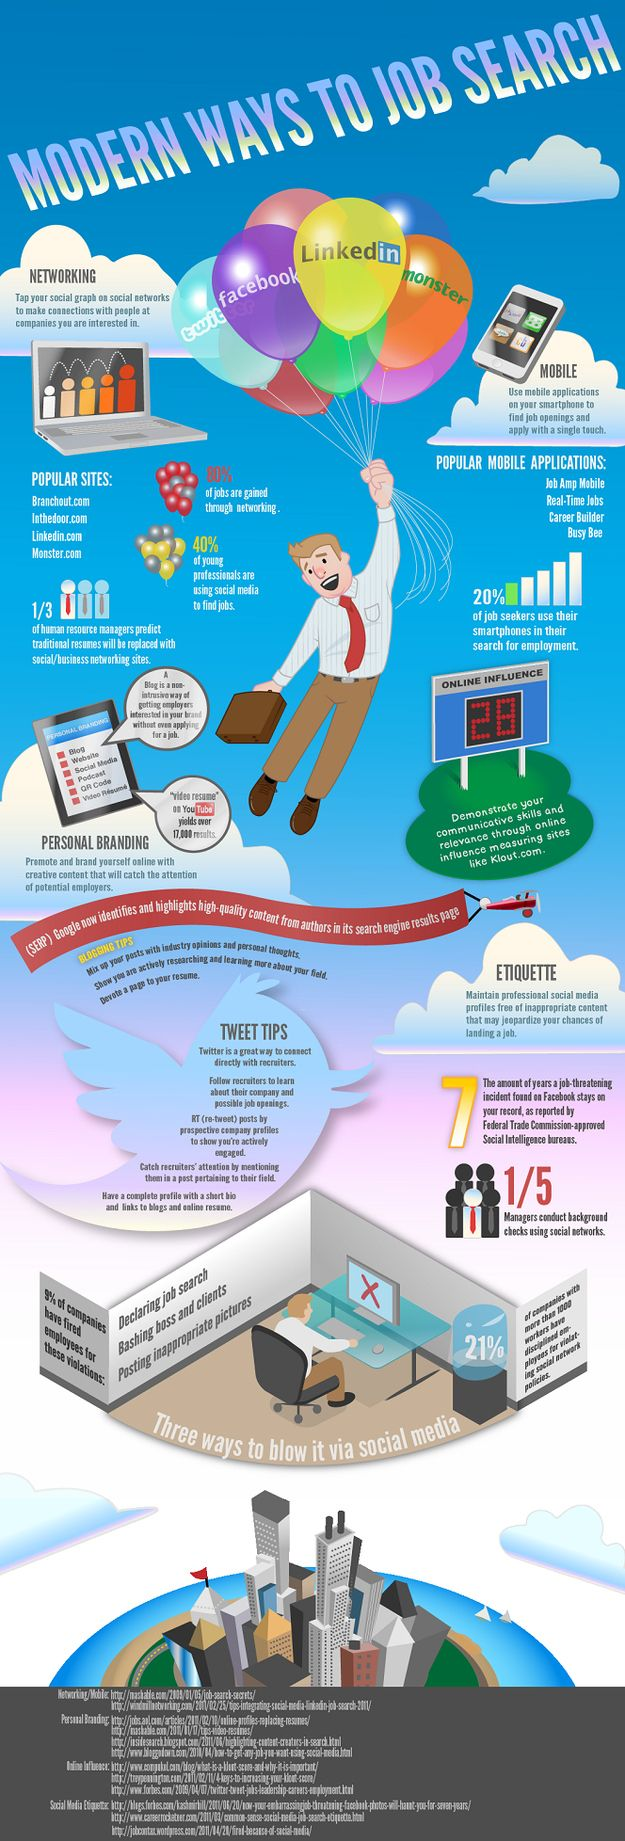 Modern Ways to #Job Search #infographic